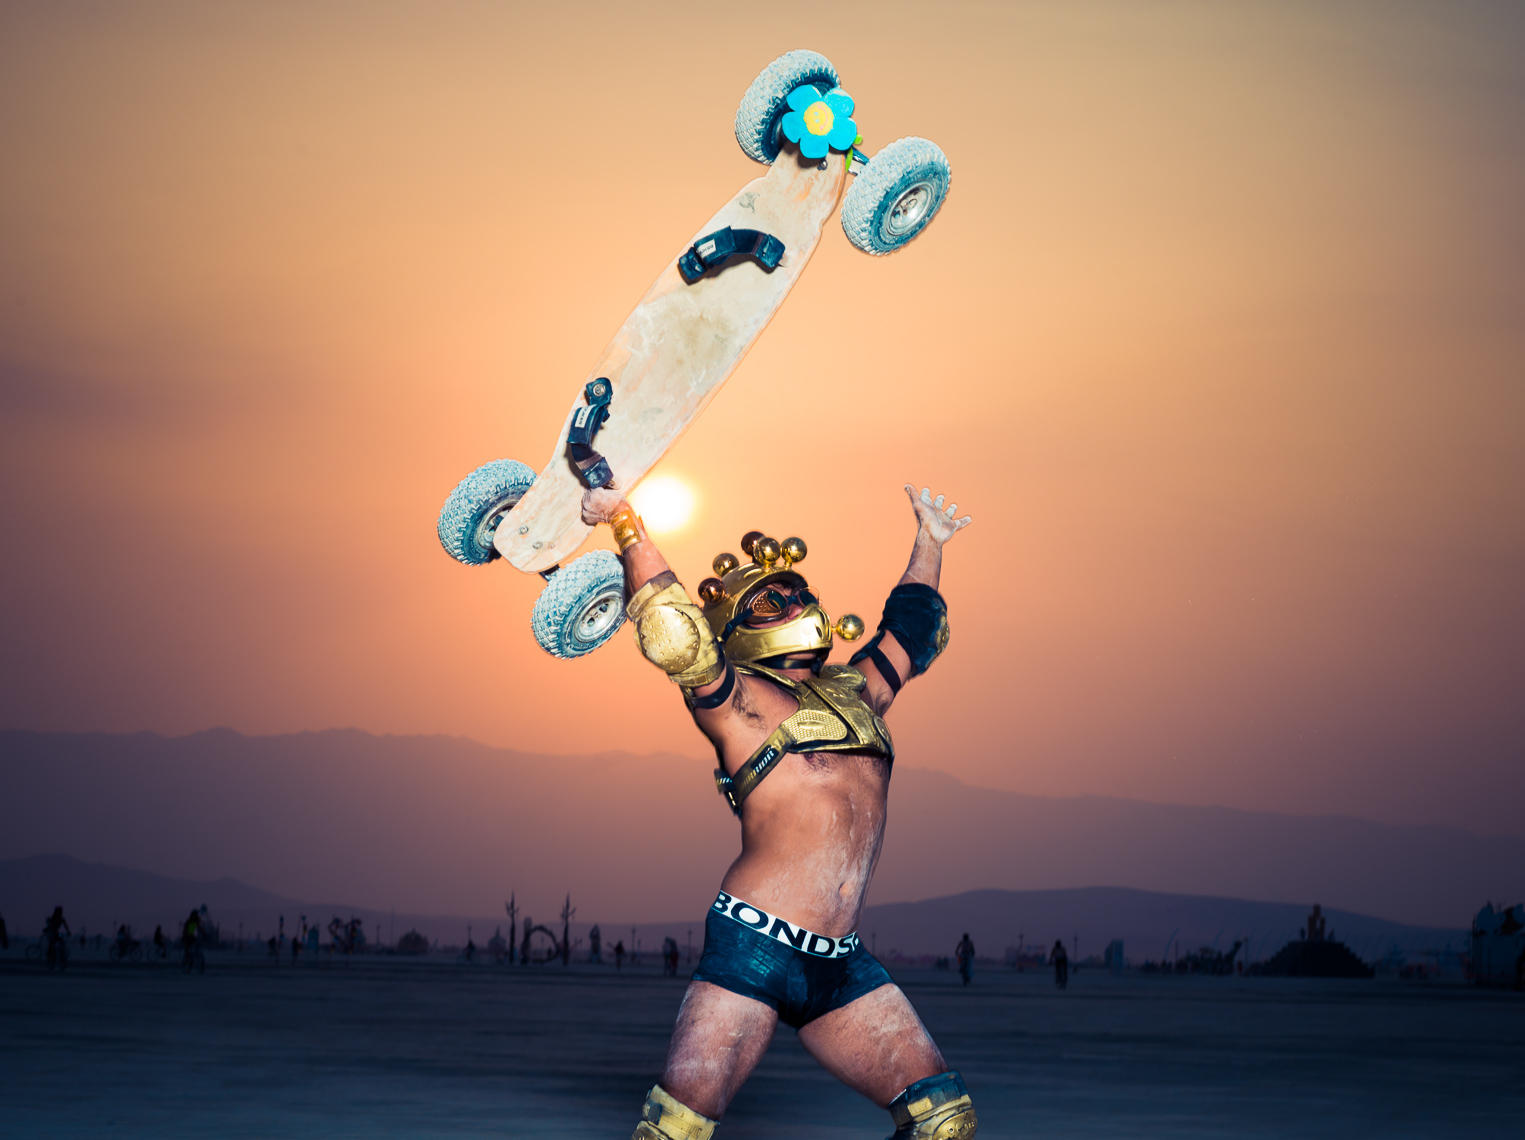 Eric_Schwabel-Burning Man 2013_008427